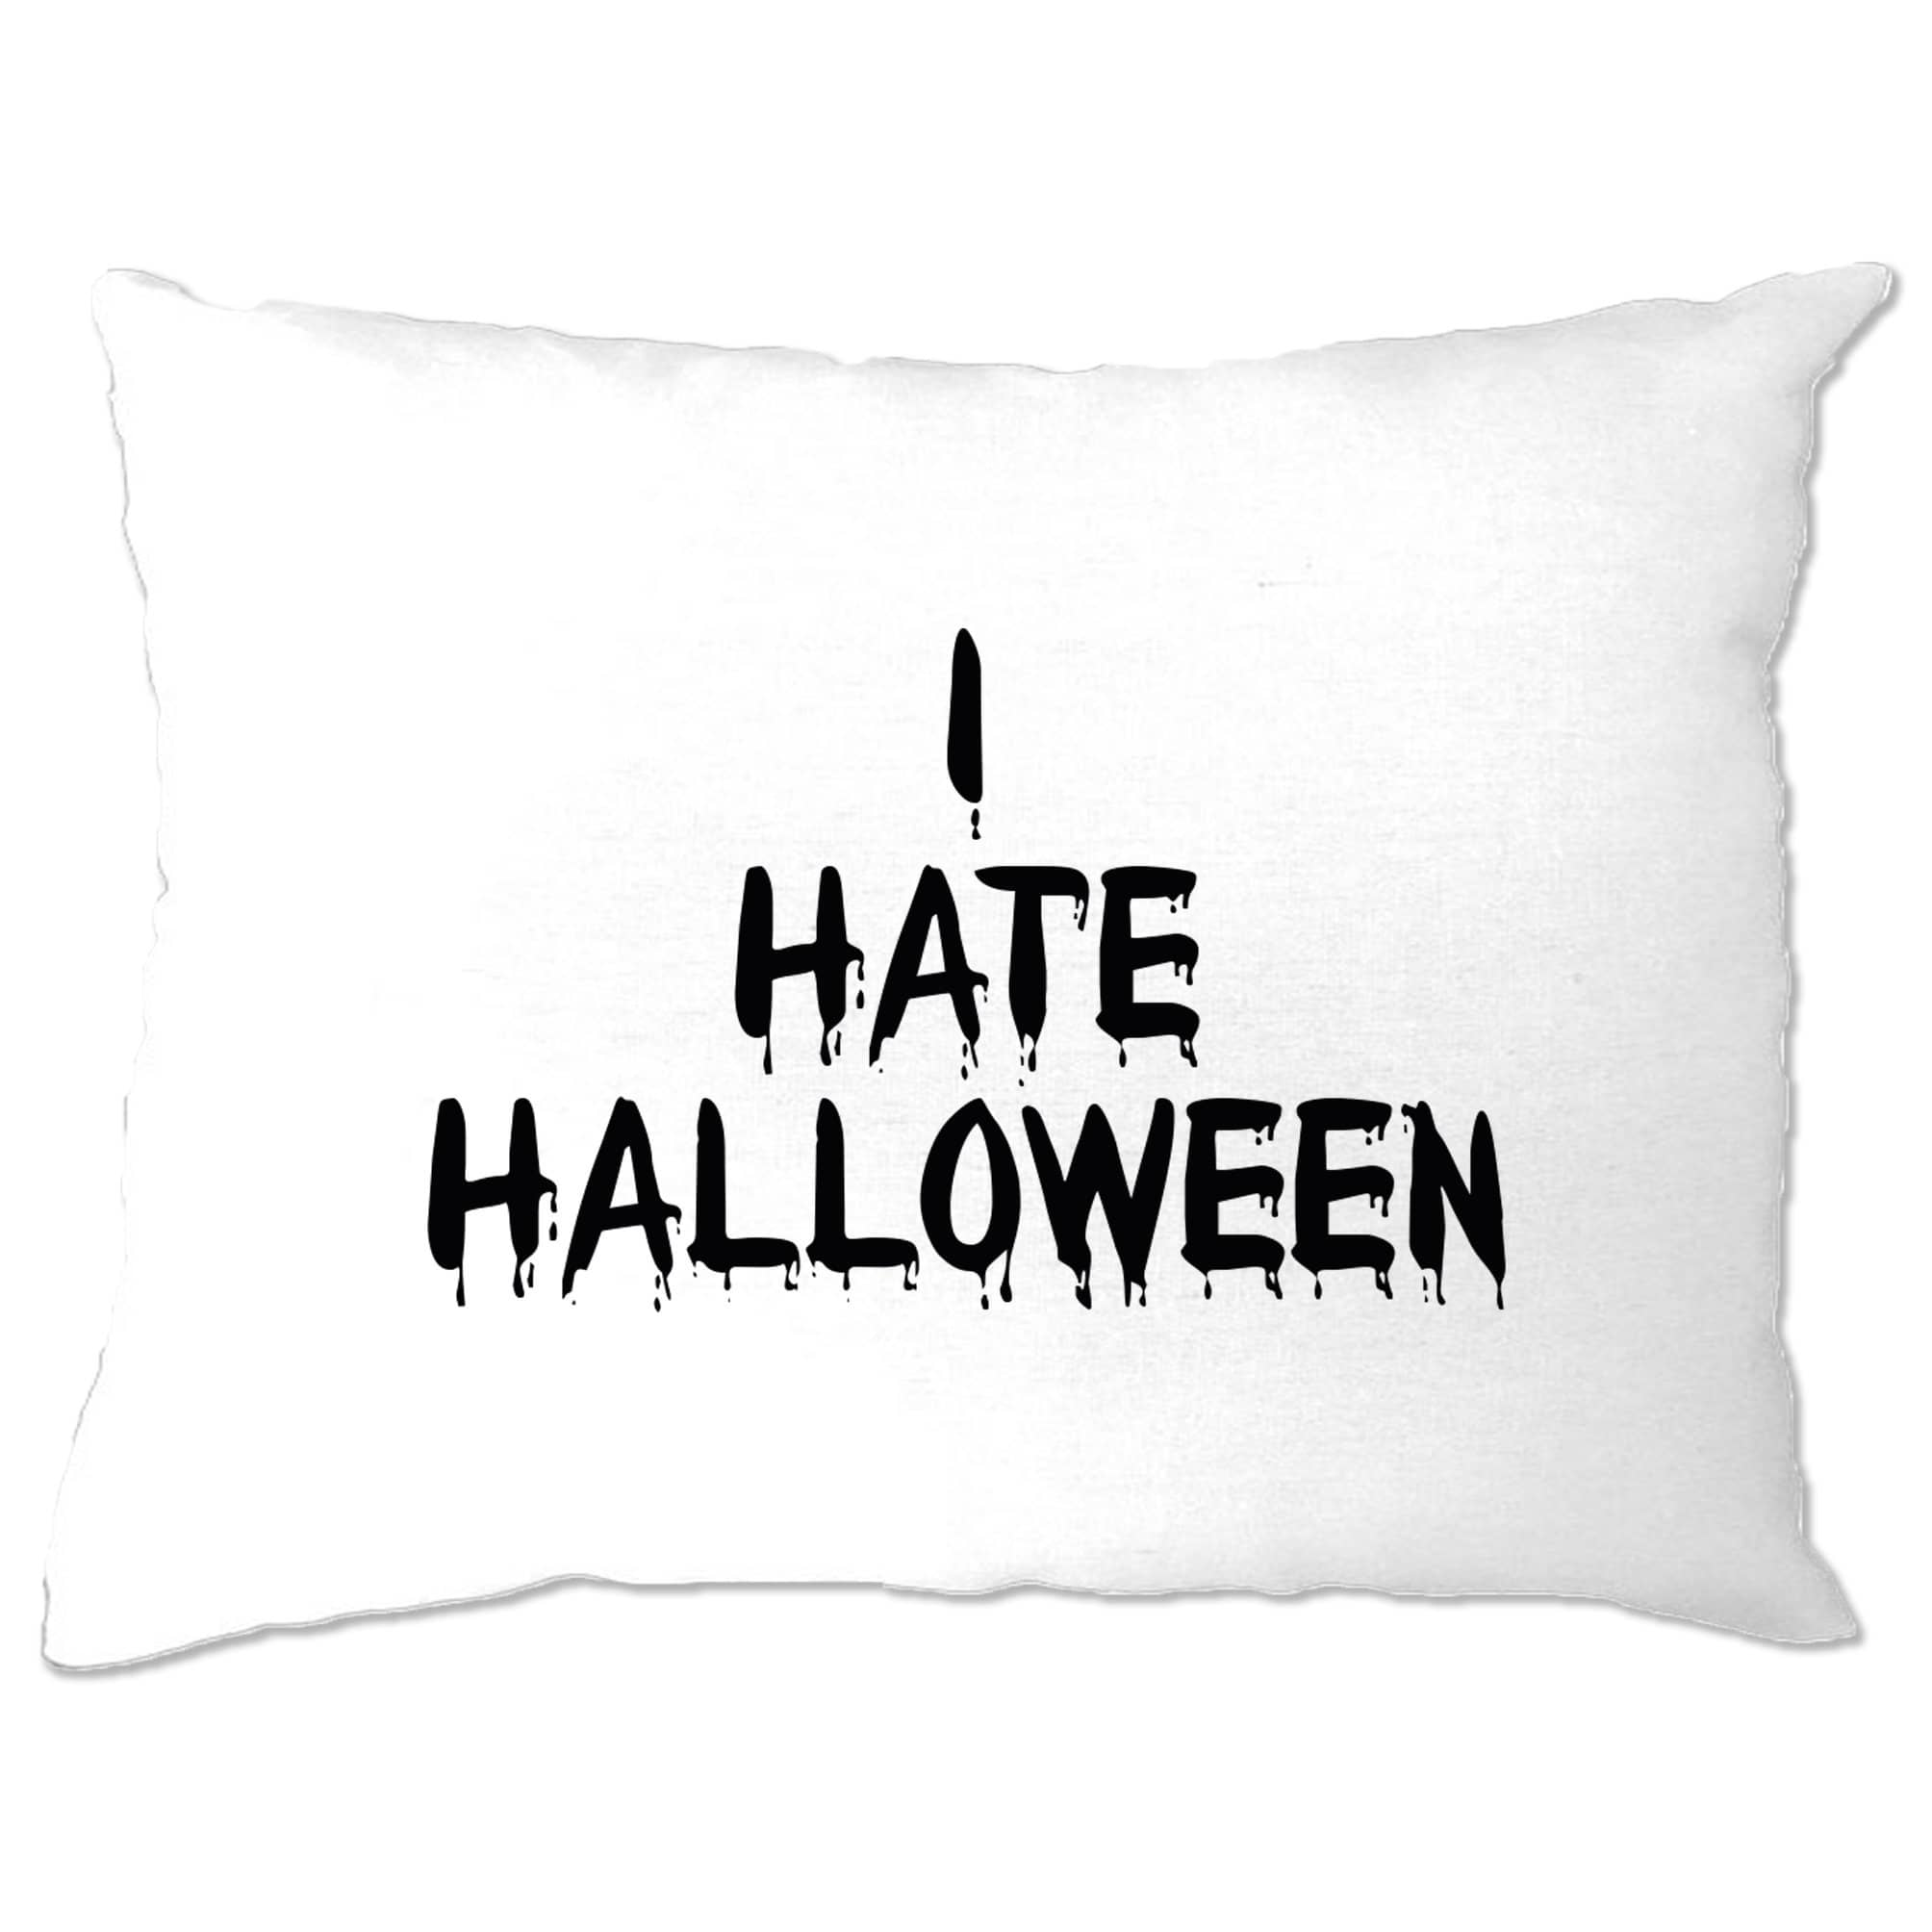 Anti-Holiday Pillow Case I Hate Halloween Slogan